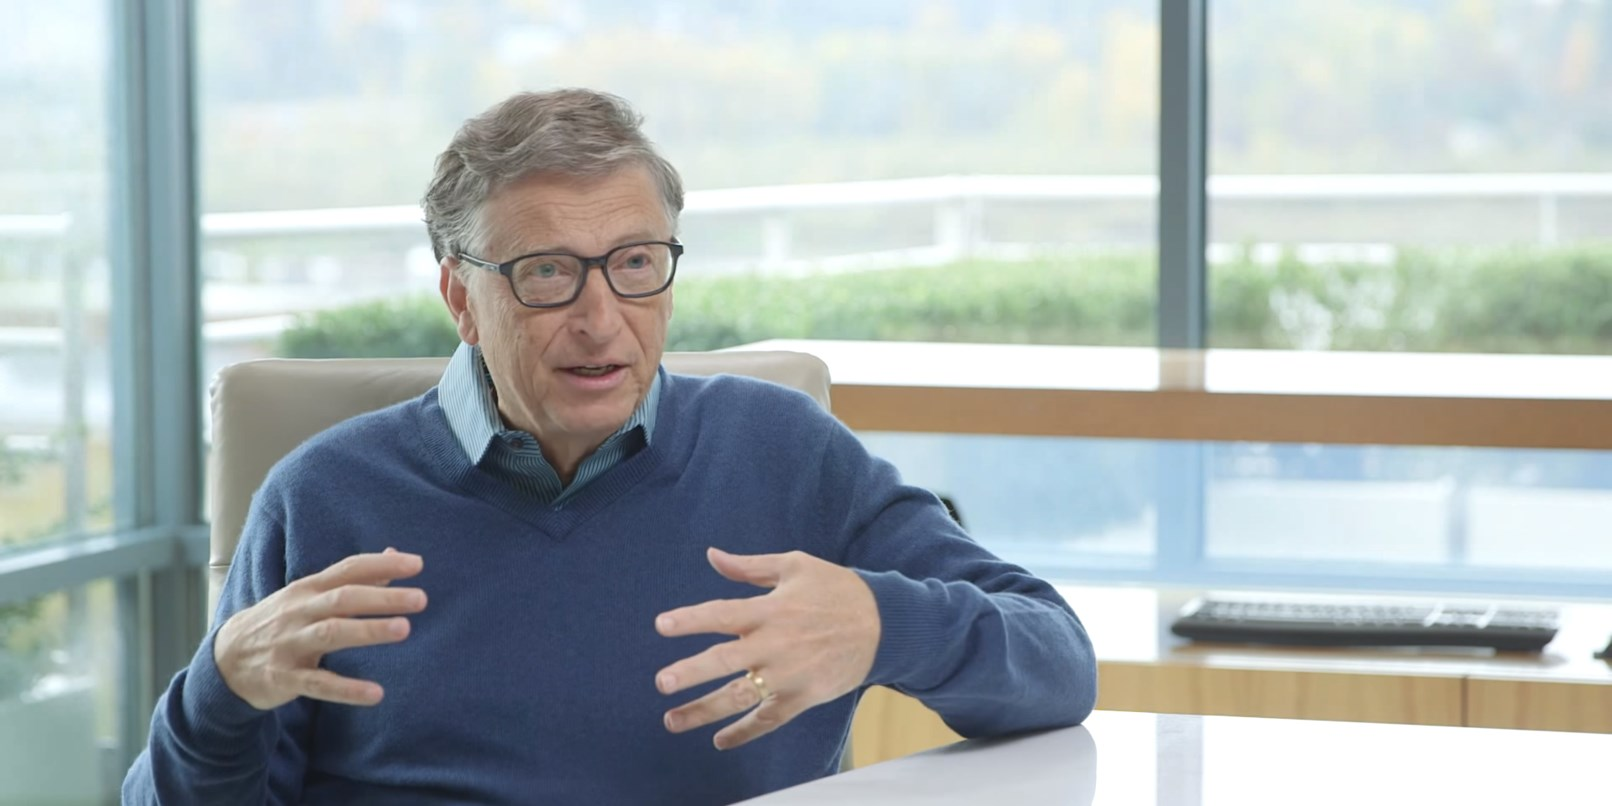 Bill Gates wasn't as tech-forward a parent as you might think